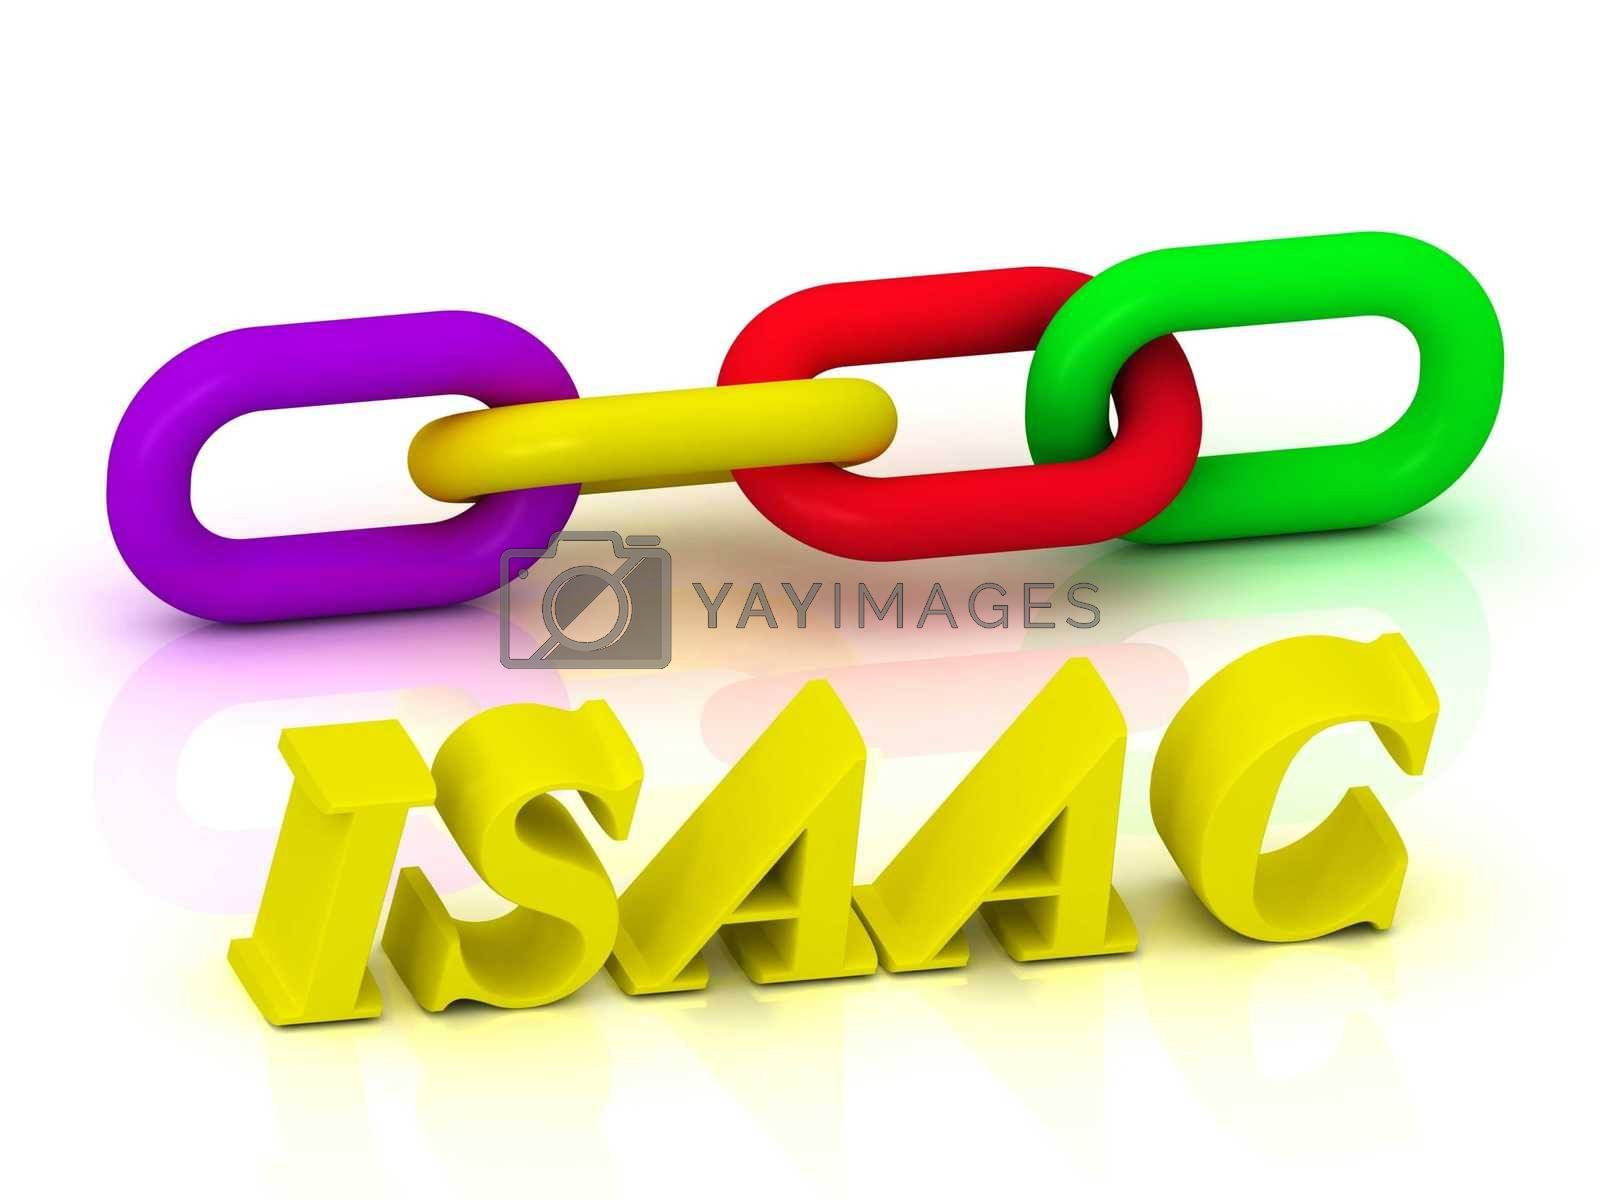 ISAAC- Name and Family of bright yellow letters and chain of green, yellow, red section on white background